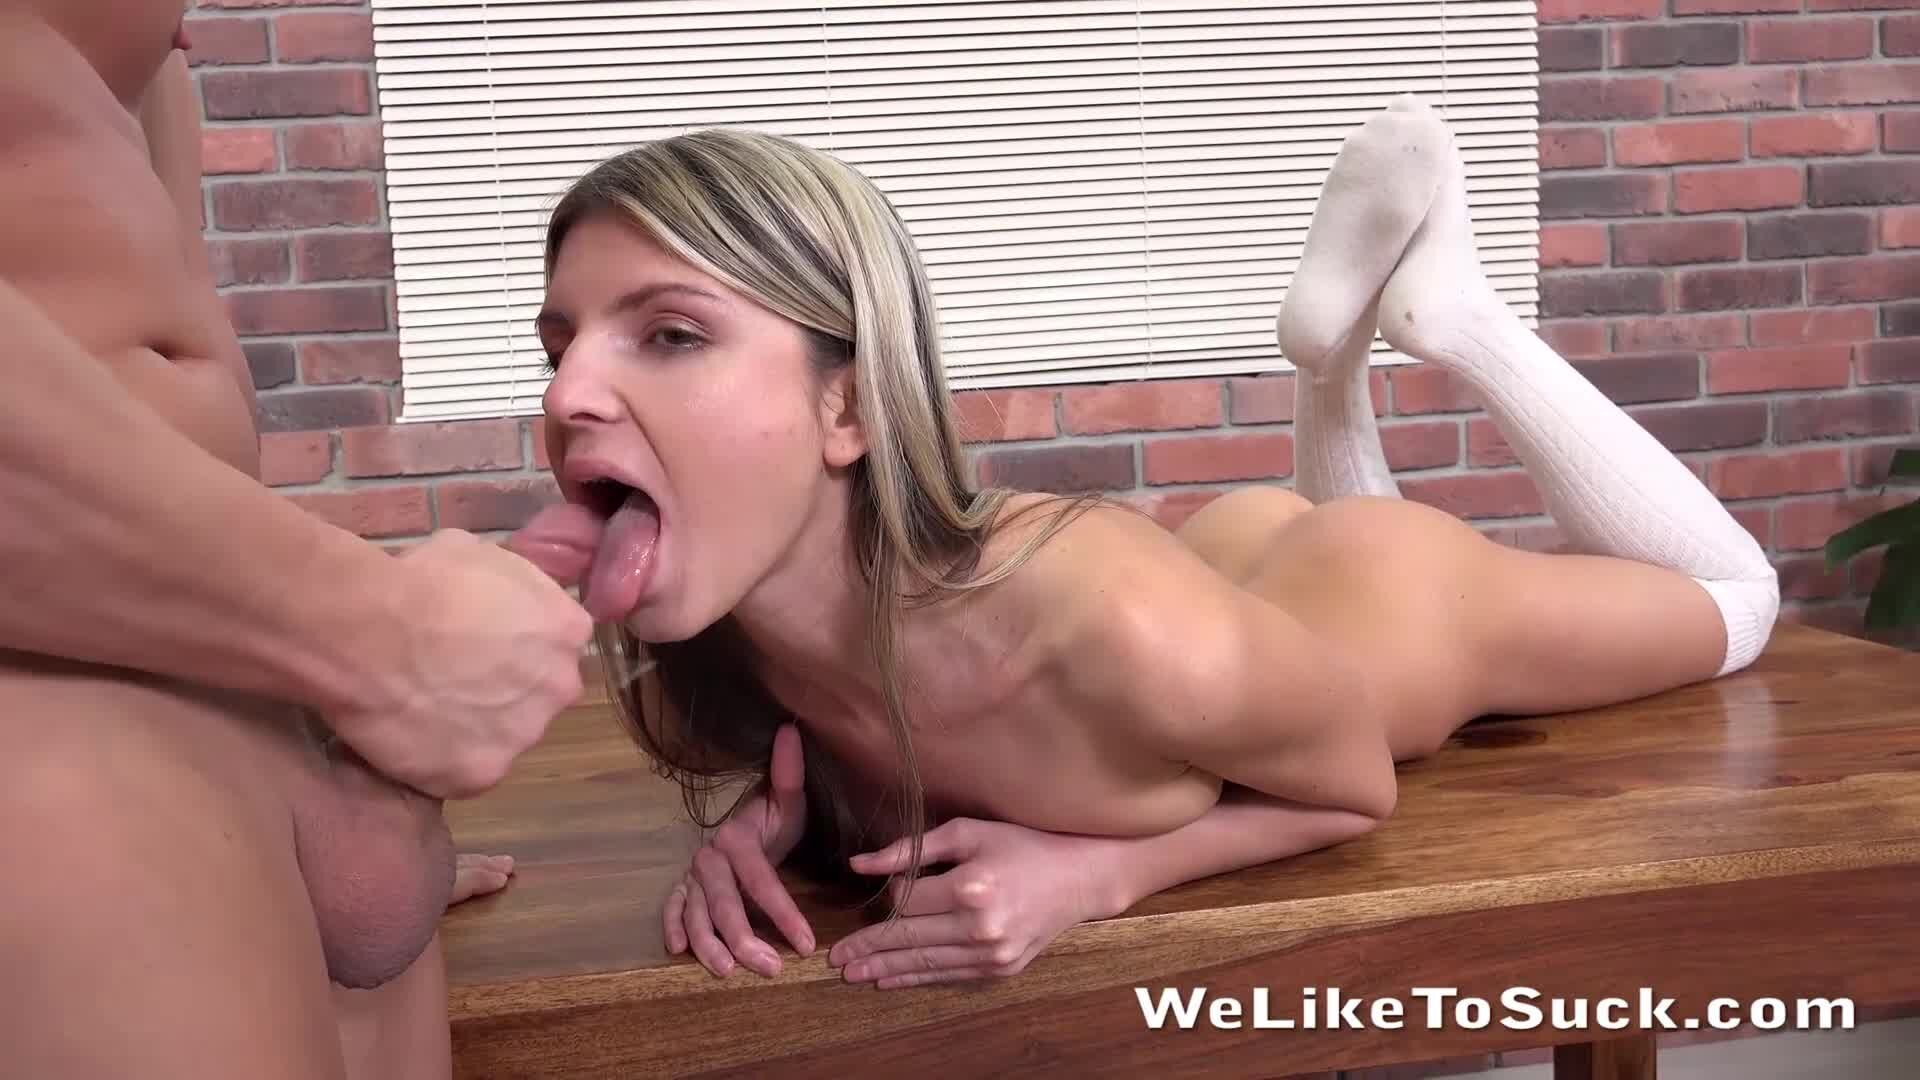 Petite Blonde Teen Gina Gerson Getting Her Pussy And Mouth Fucked